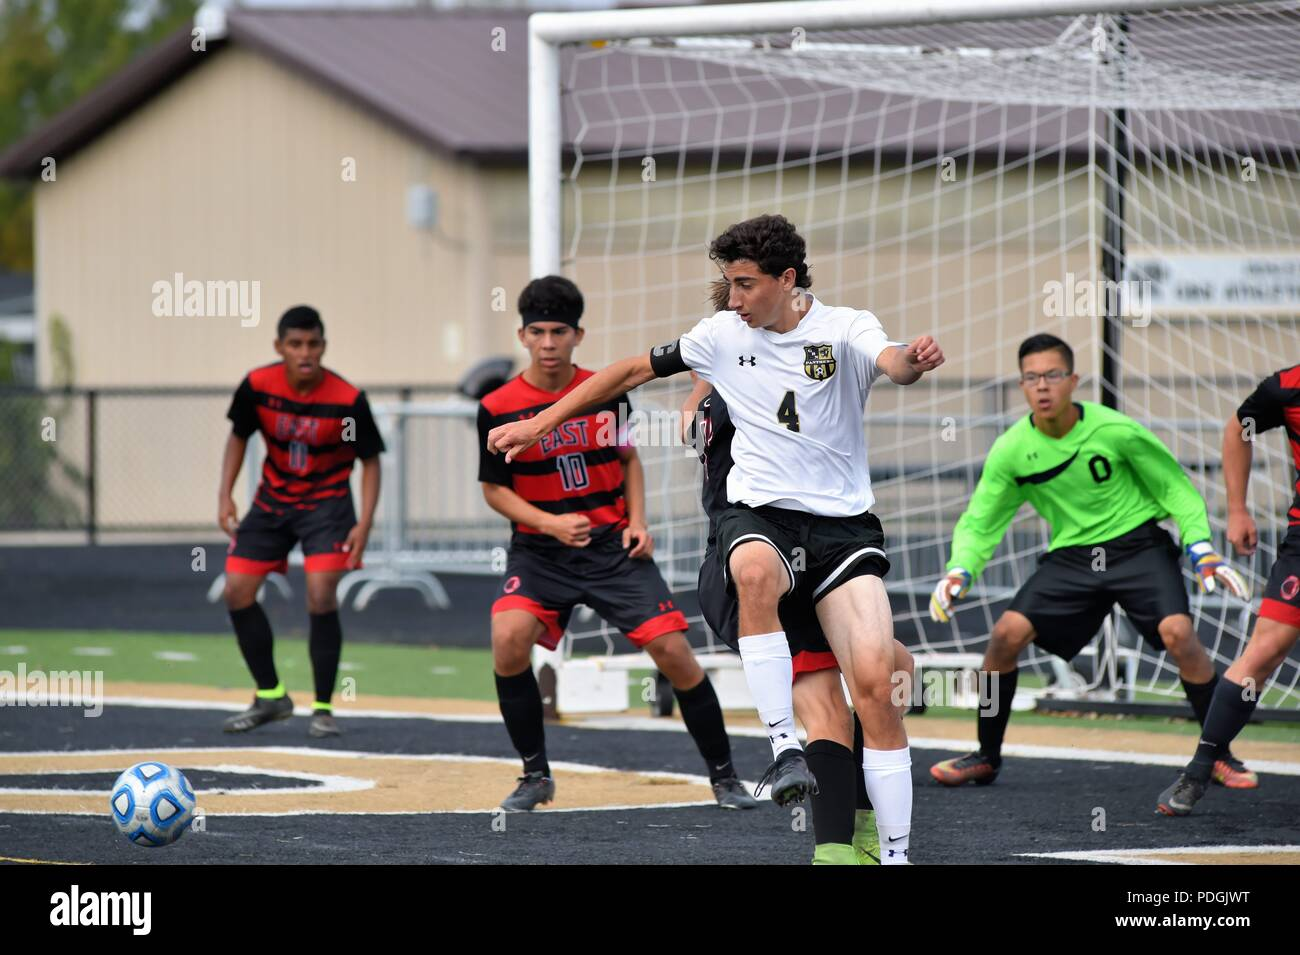 Player attempting to control a corner kick in front of the opposing goal, however, the ball was evetually cleared by the defense. USA. - Stock Image